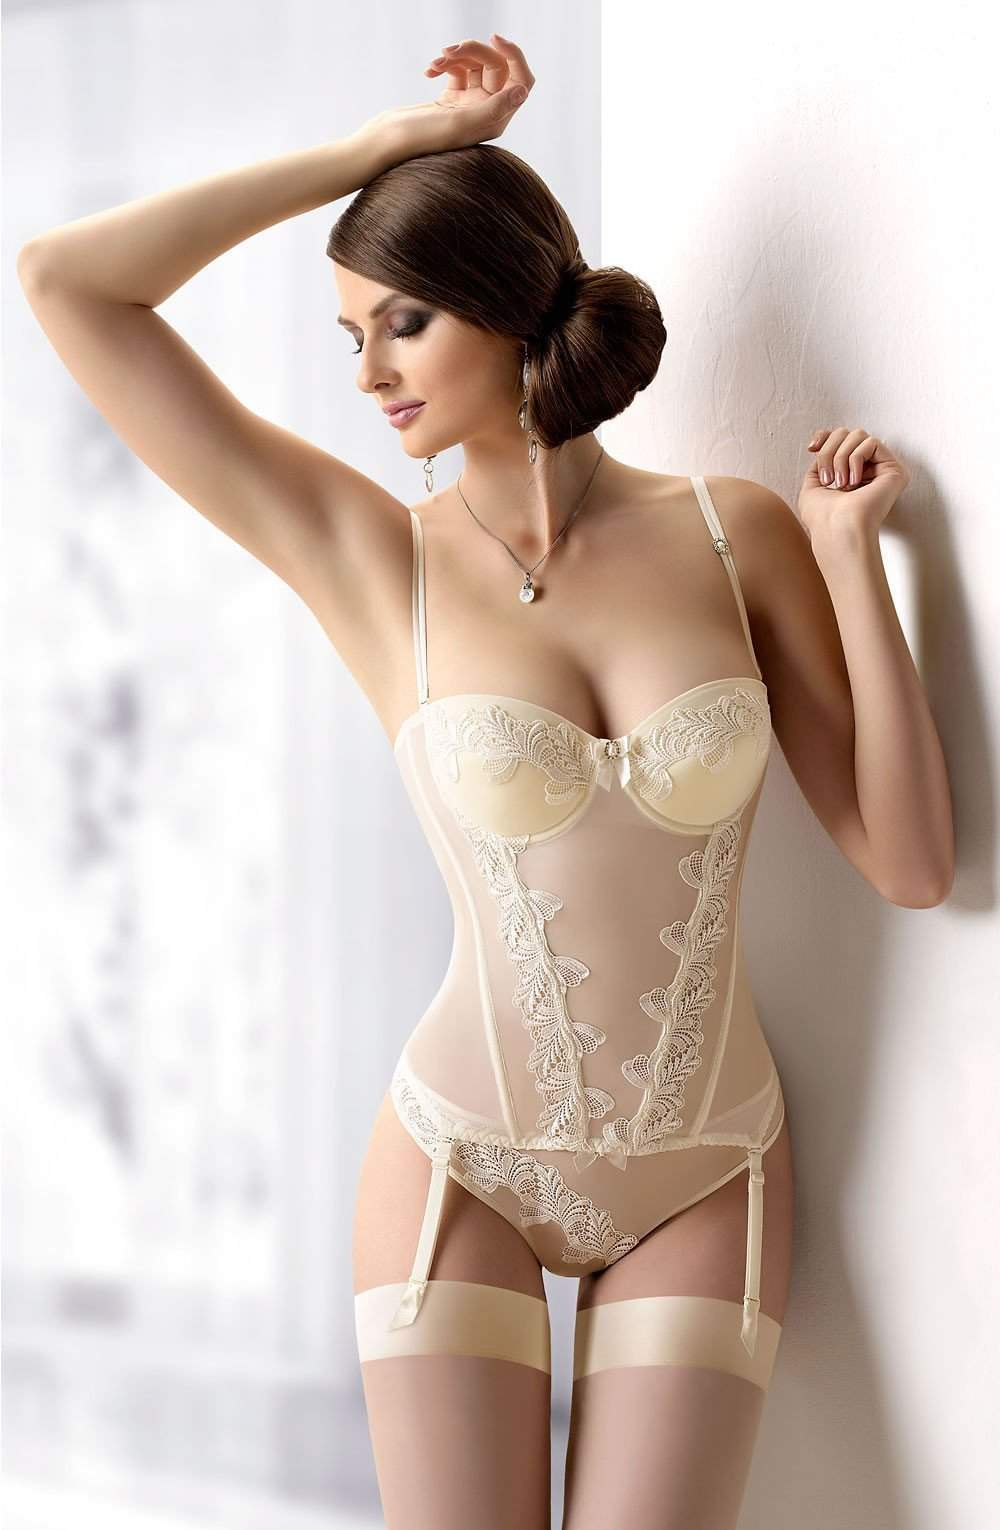 Miette Corset by Gracya Wedding Lingerie - Gracya - Katys Boutique Lingerie USA